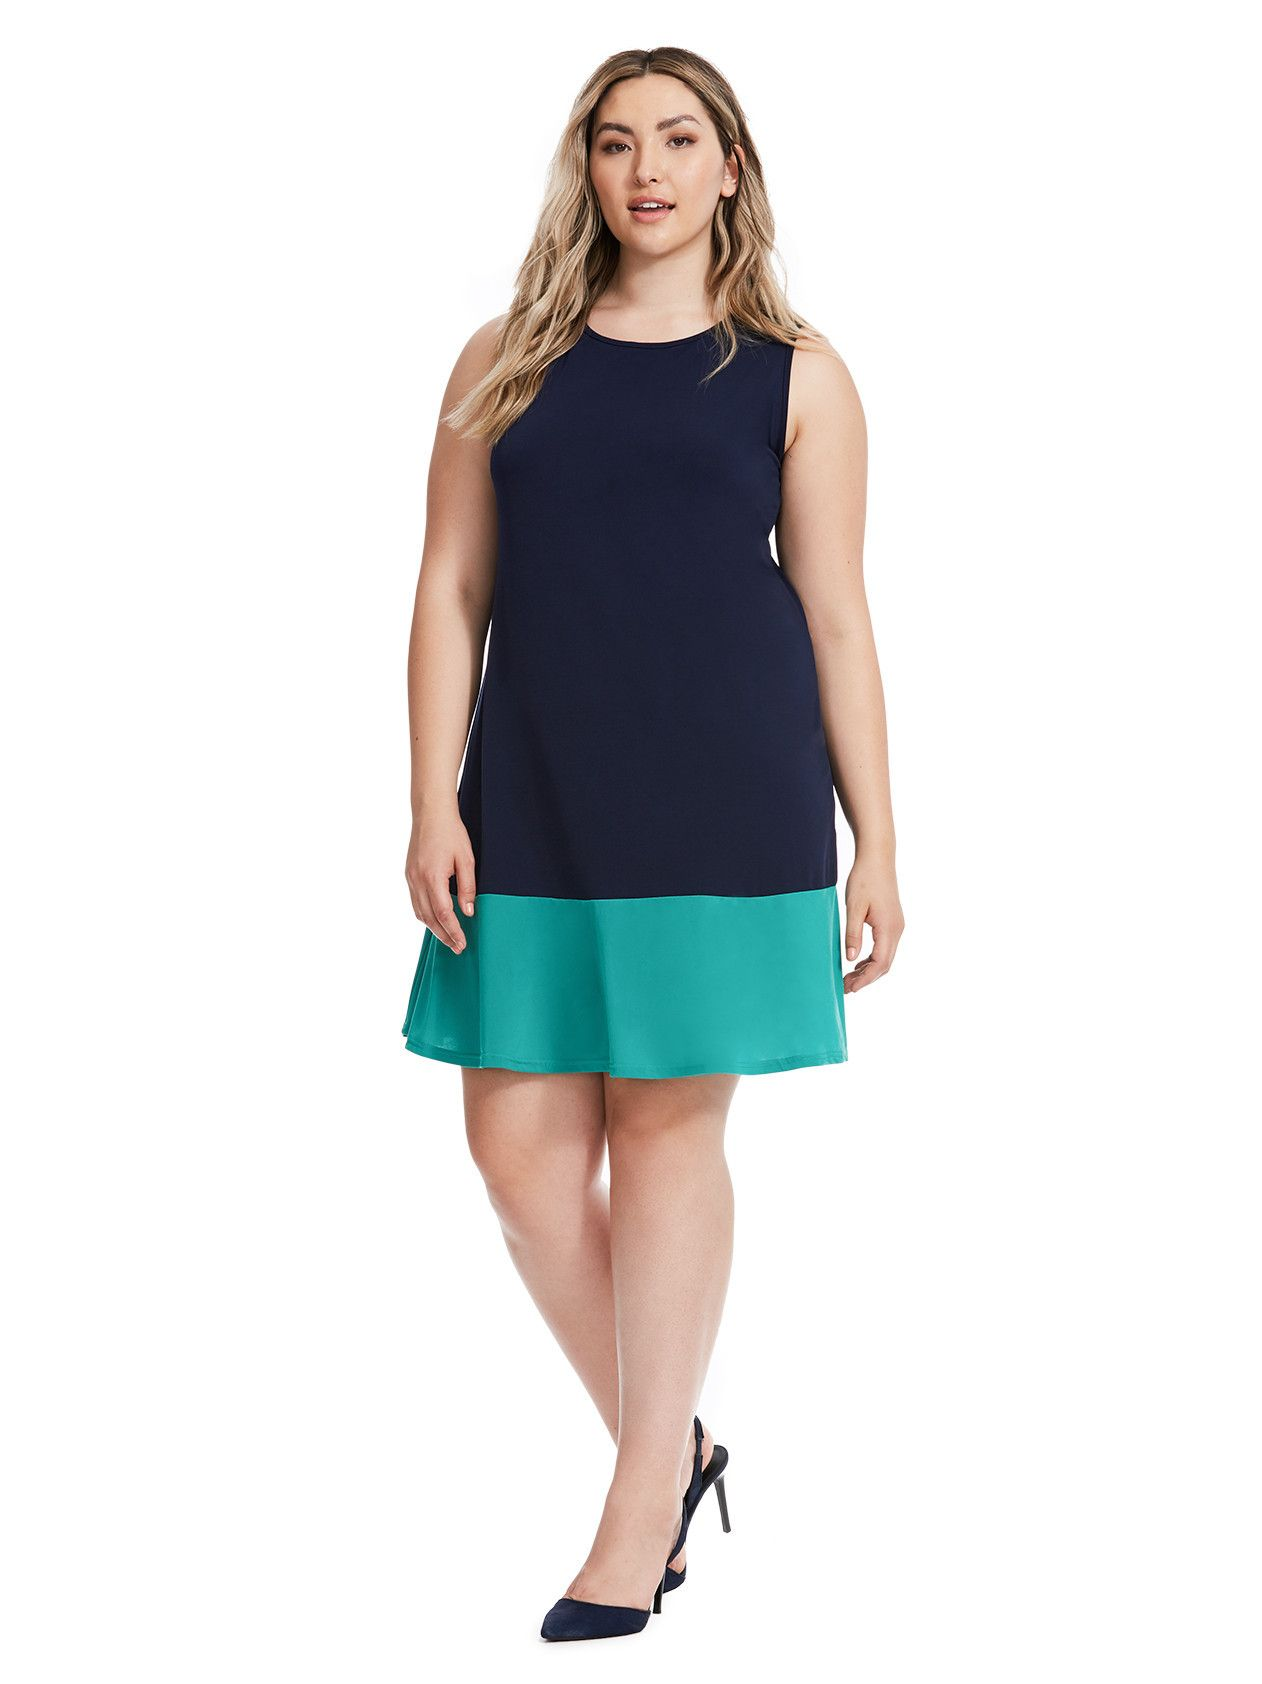 Tiana B | Colorblock Dress In Navy And Teal | Gwynnie Bee